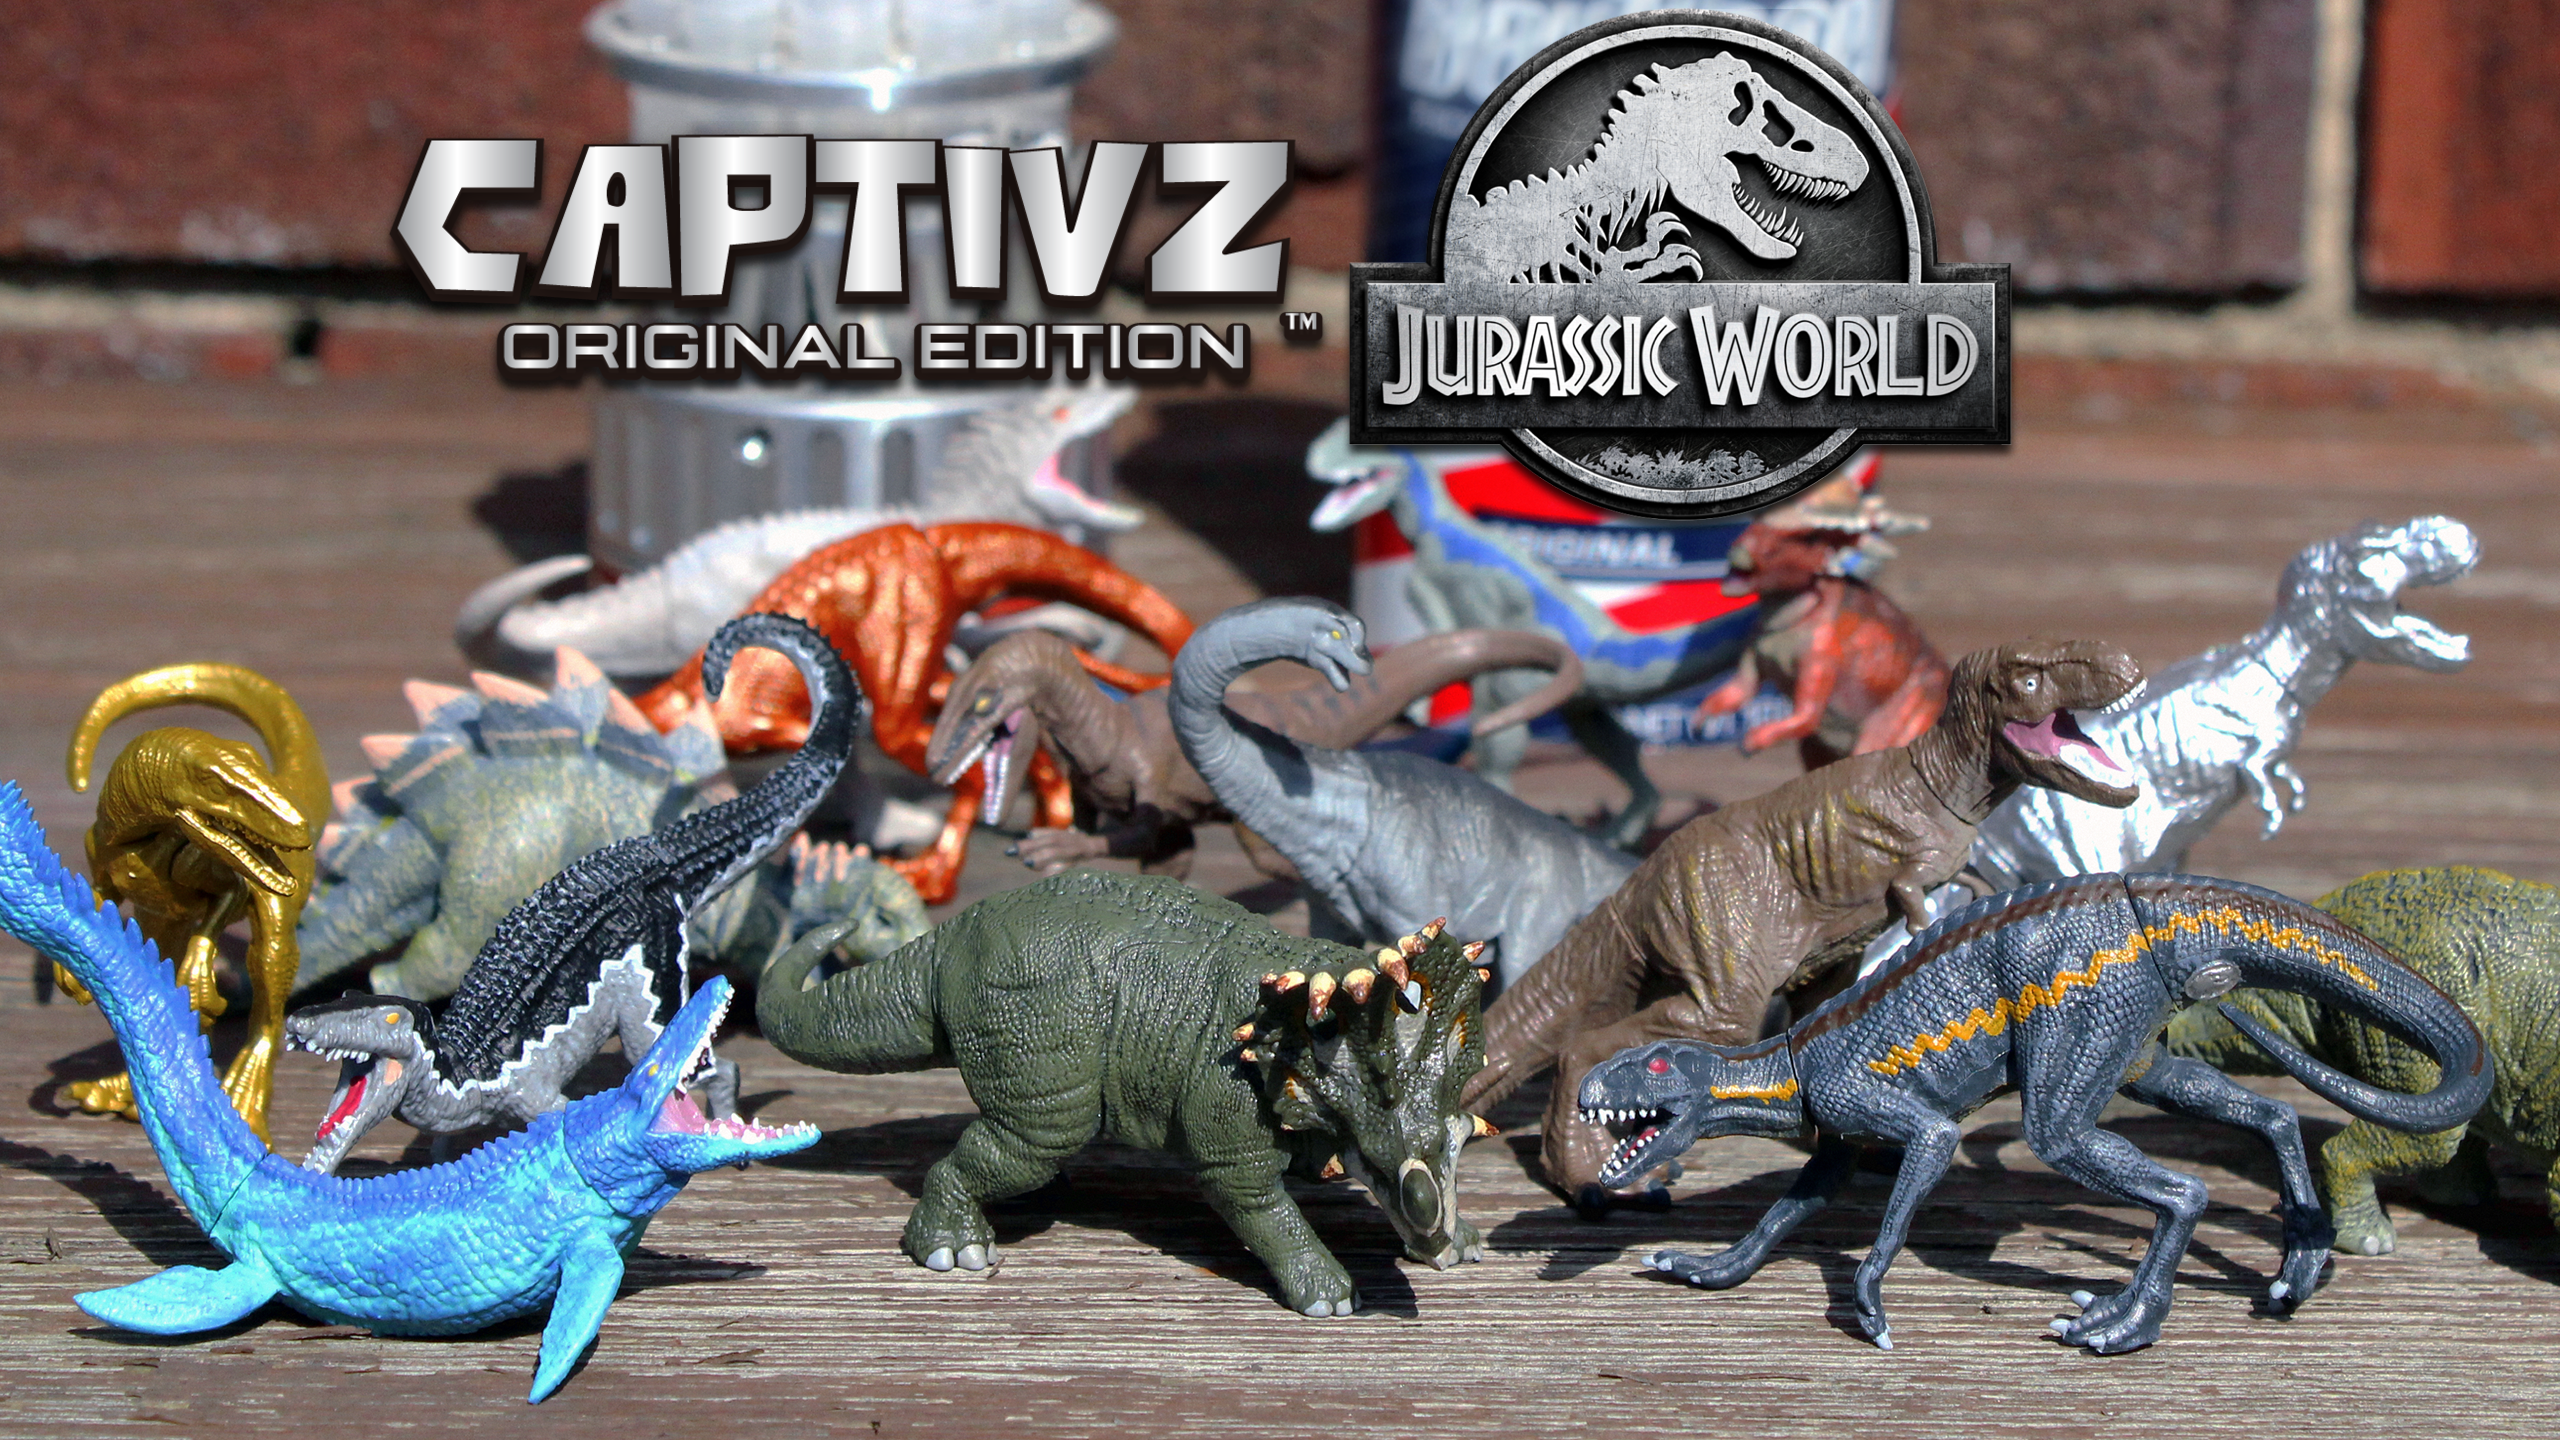 Jurassic World Captivz Collection: Minifigures With a Premium Bite